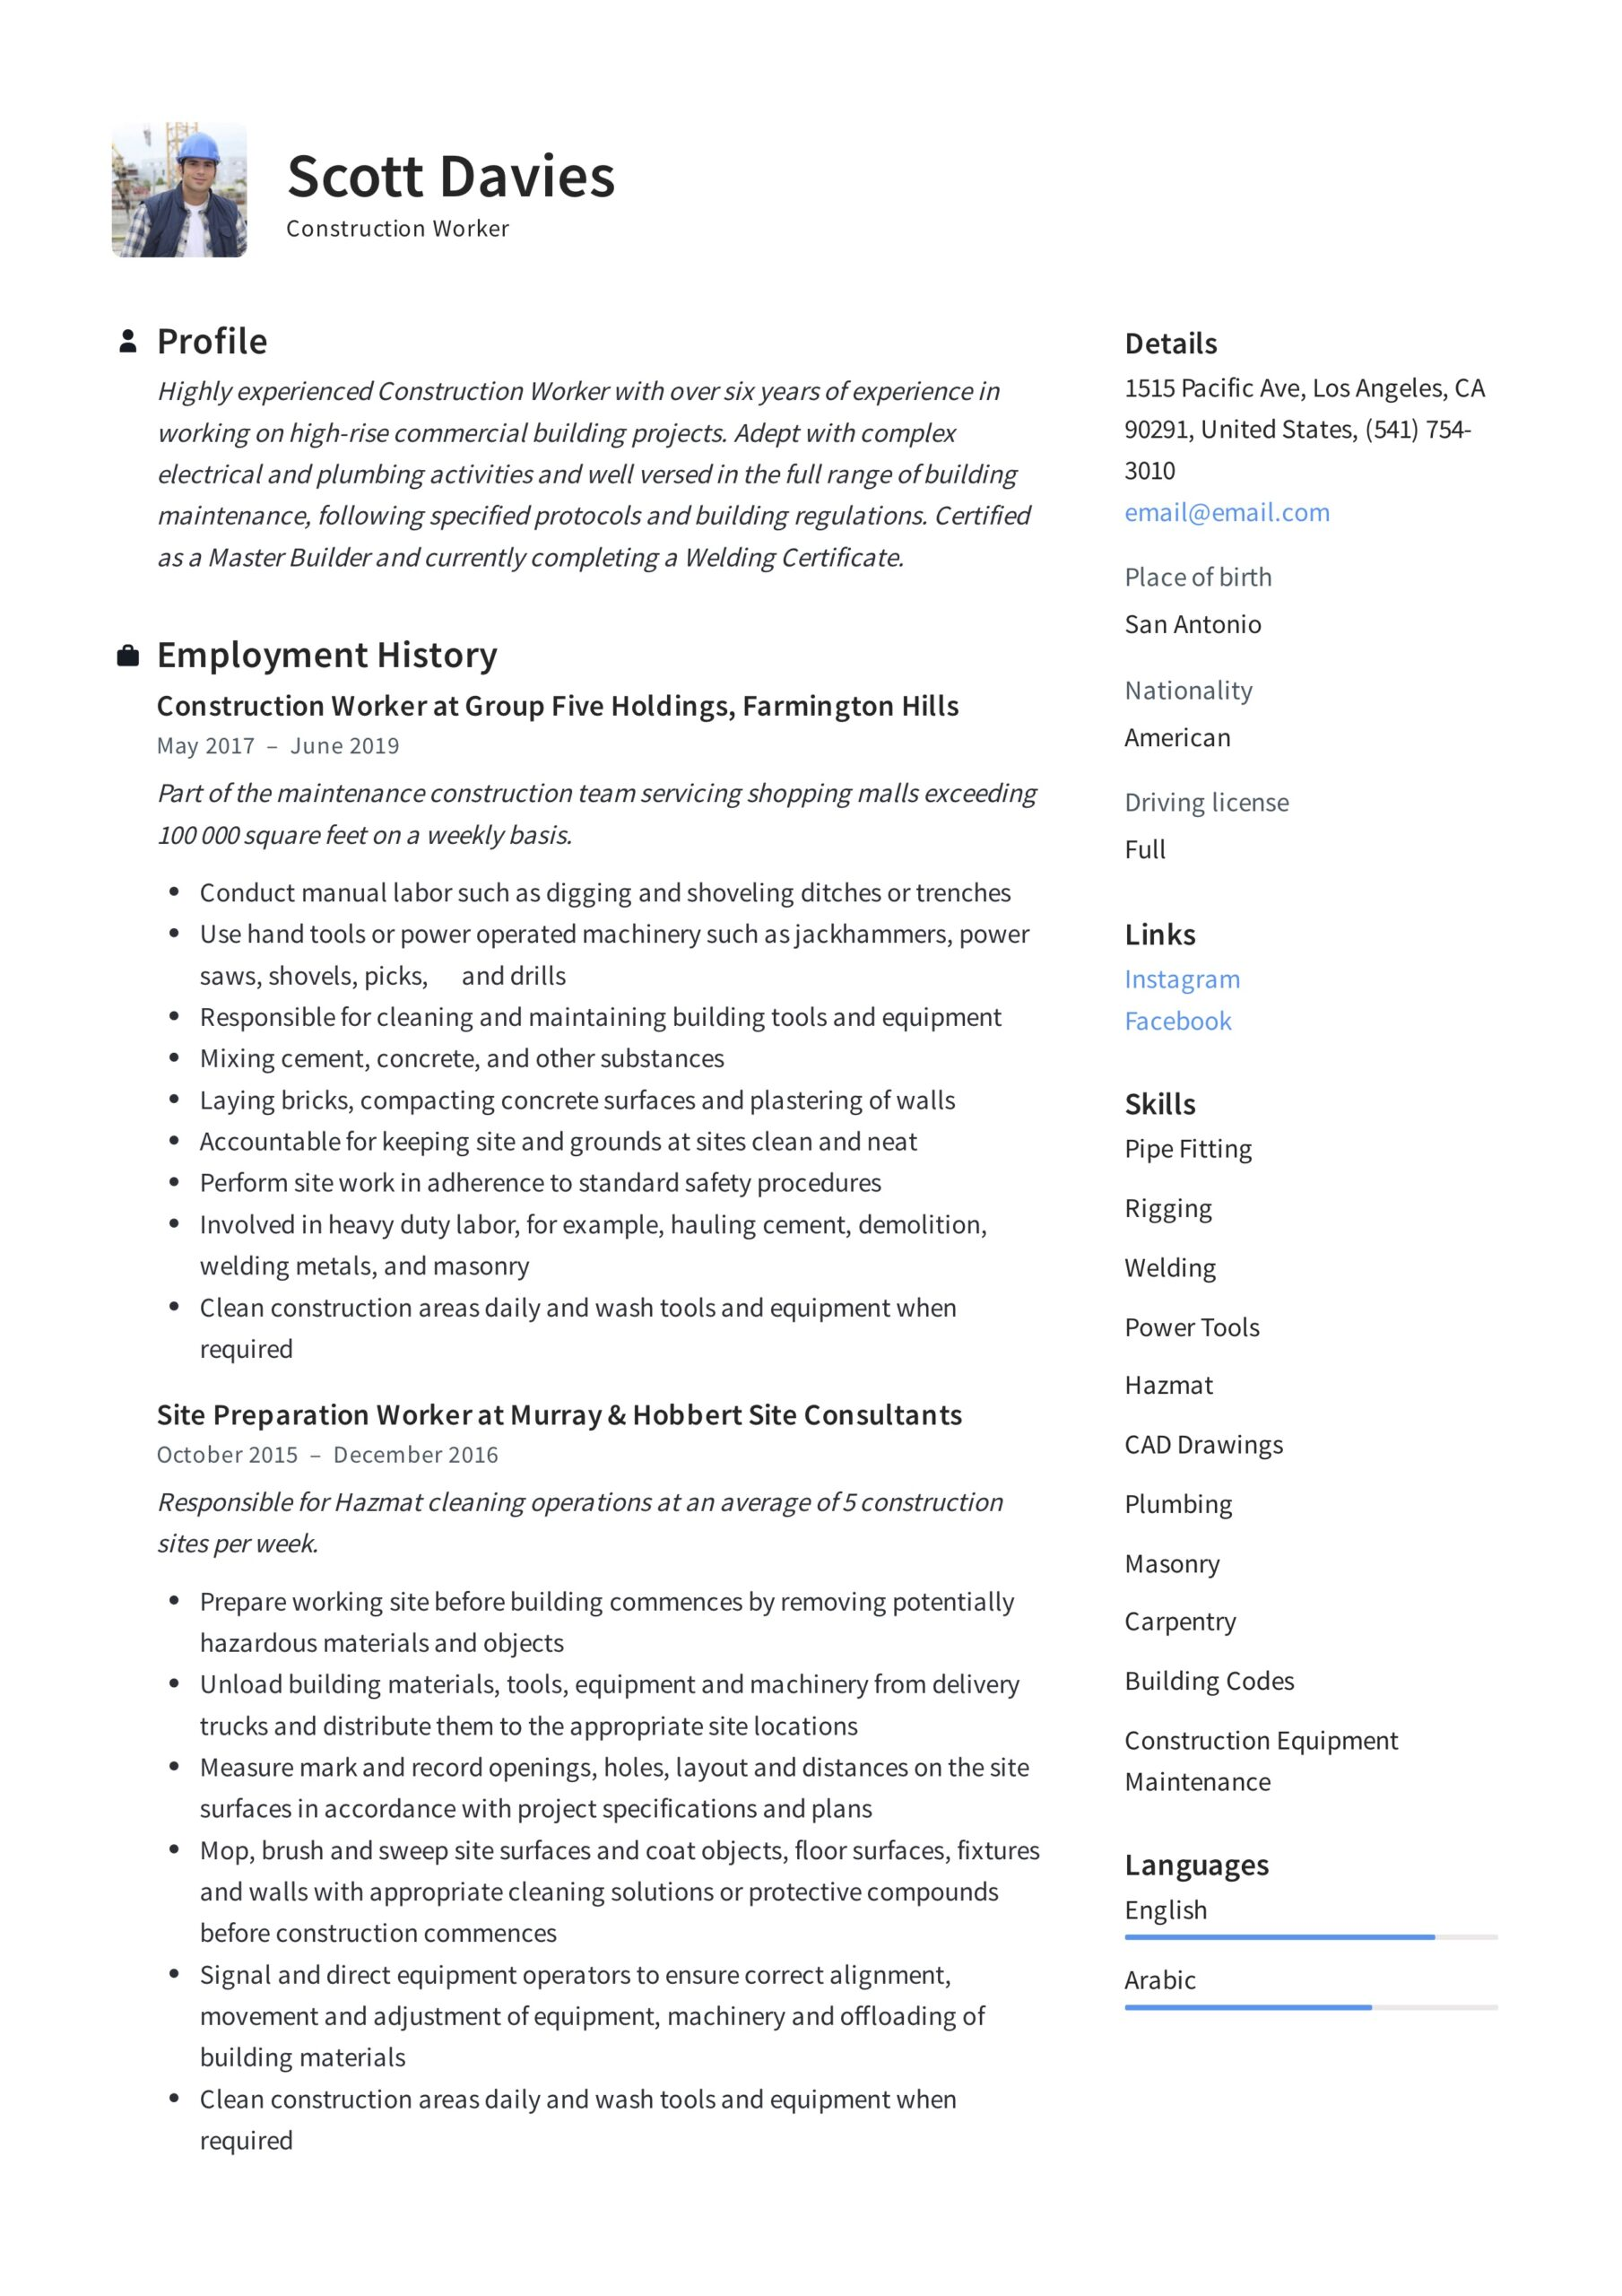 construction worker resume writing guide templates pipefitter clerical skills examples Resume Construction Pipefitter Resume